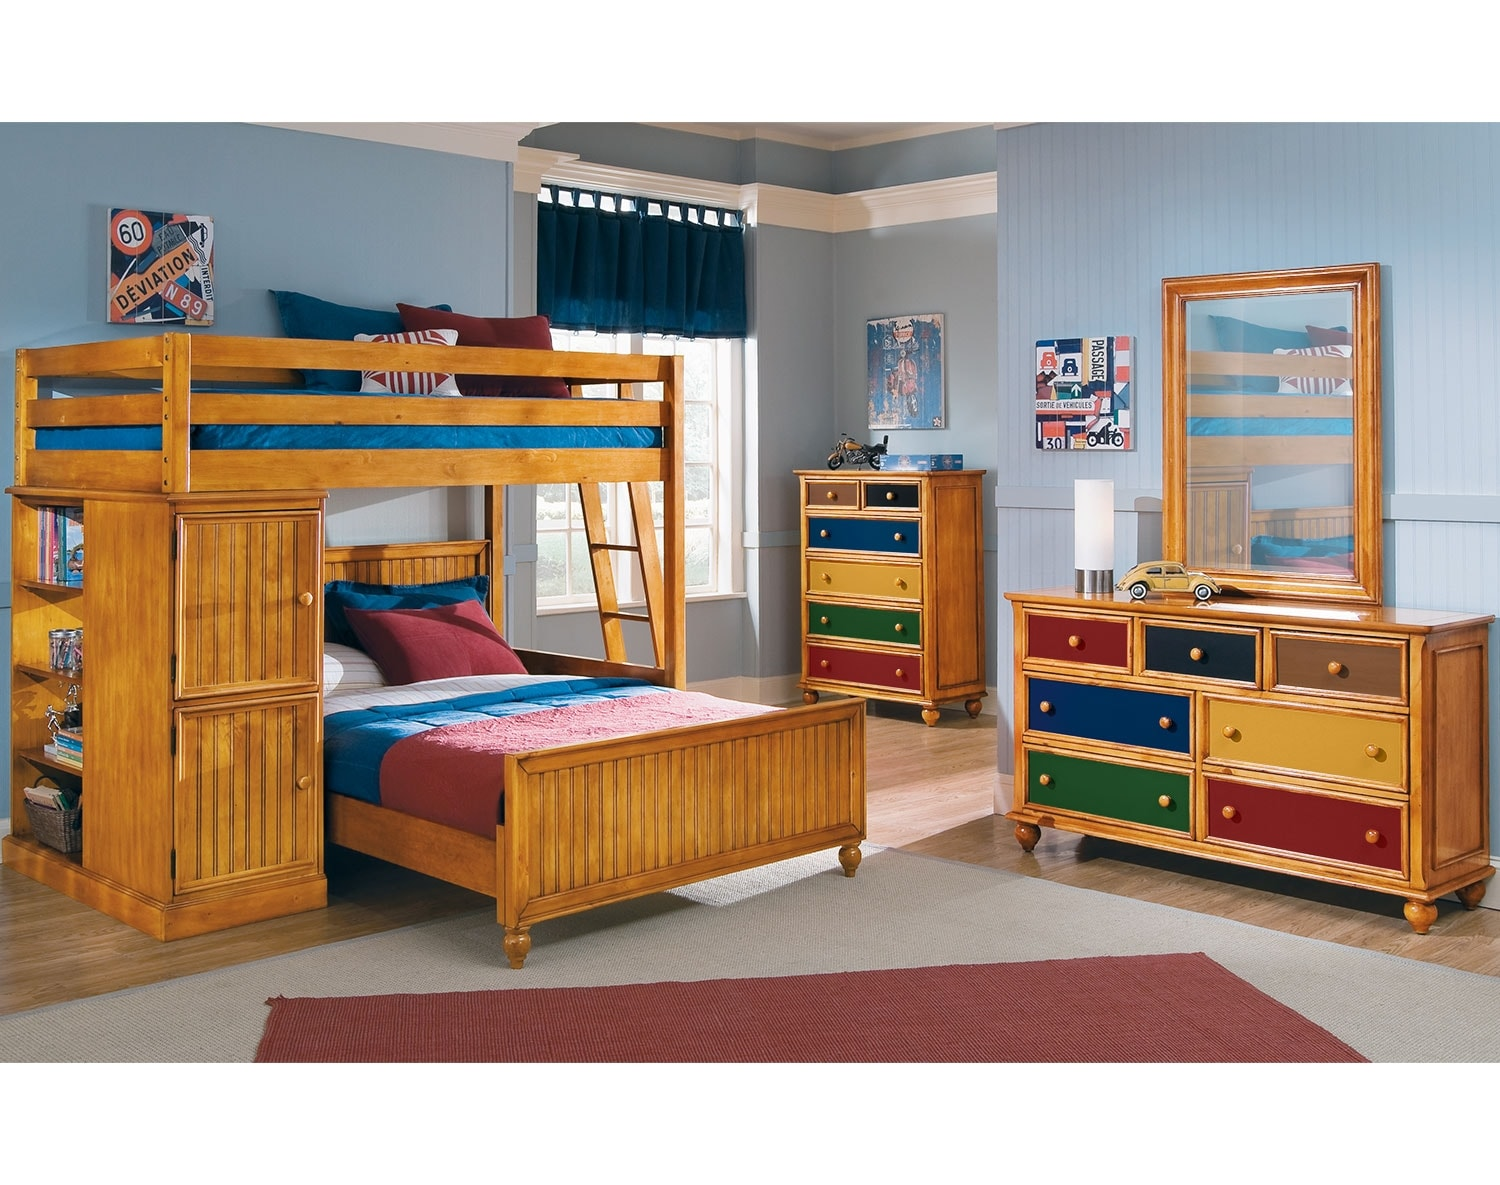 Kids Furniture - The Riley II Pine Collection - Loft Bed with Full Bed